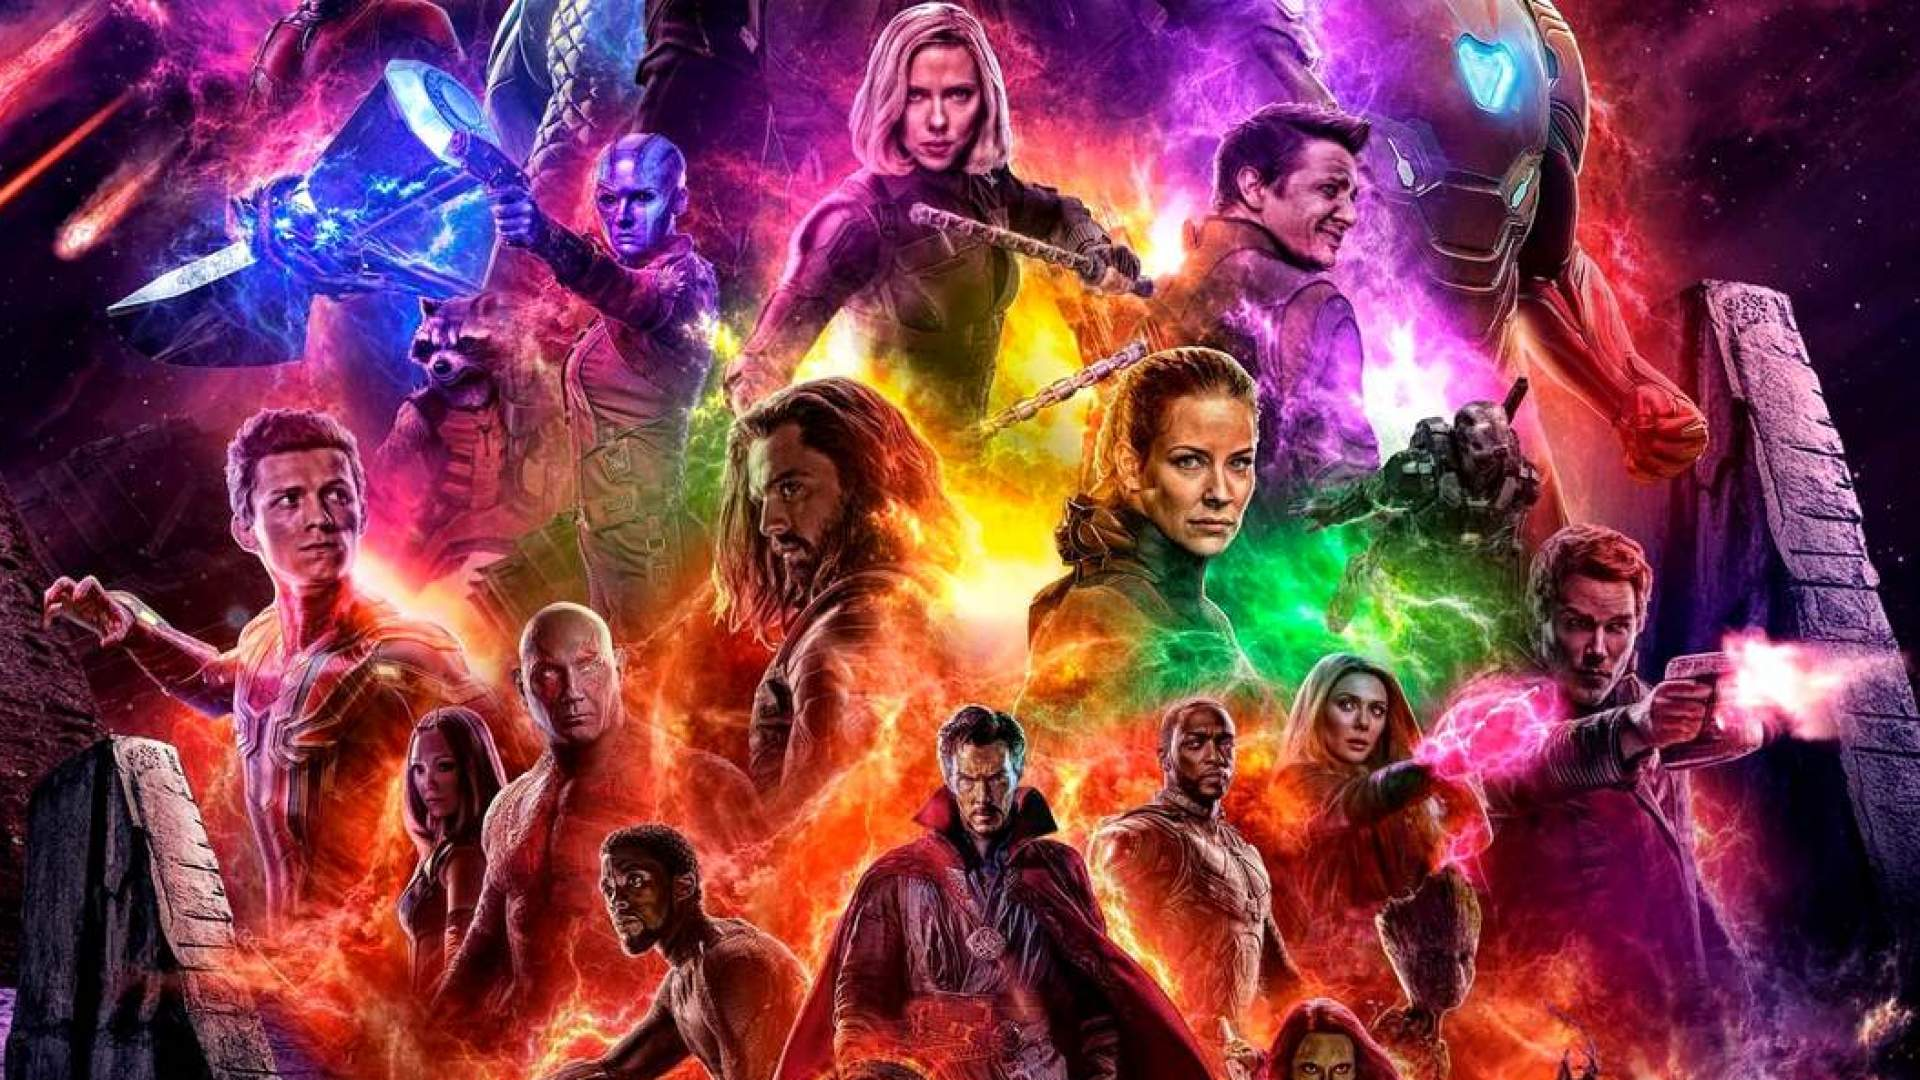 New Avengers 4 Trailer Collects All Mcu Movies